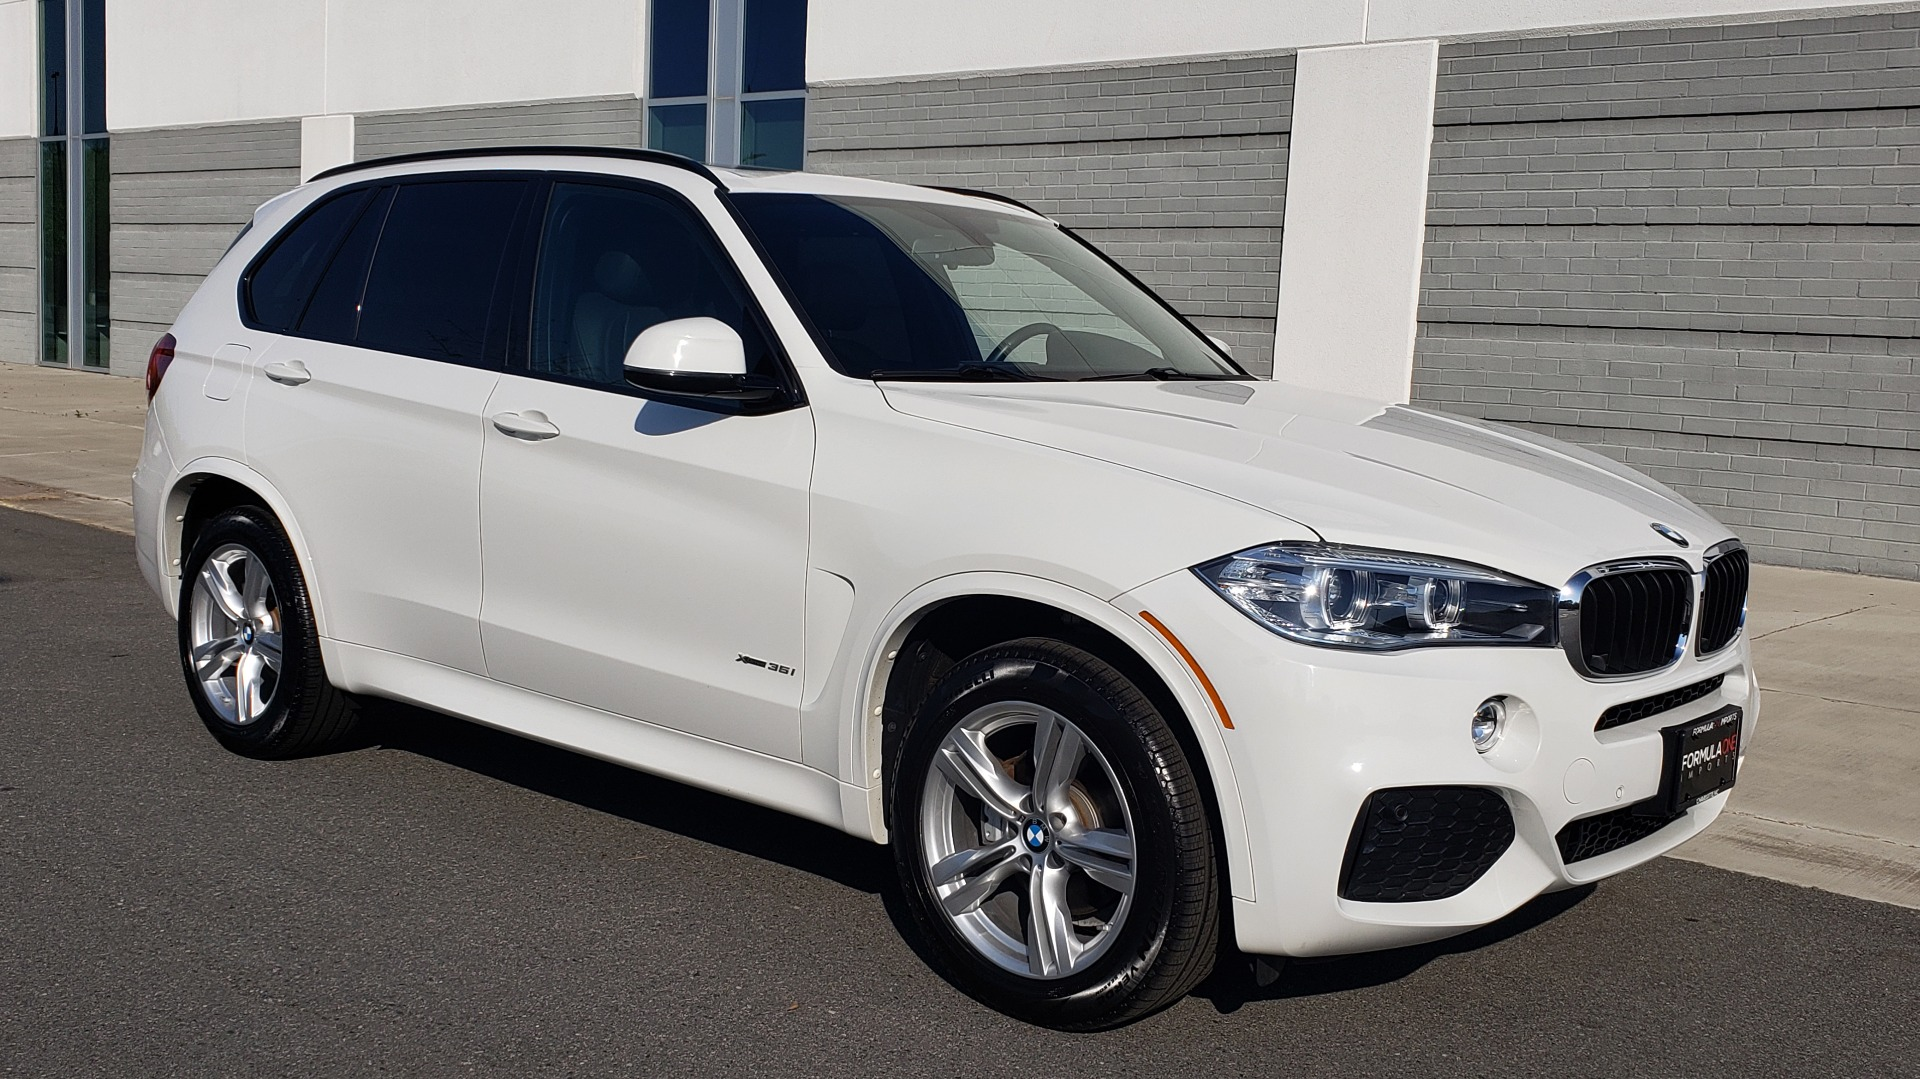 Used 2018 BMW X5 XDRIVE35I / M-SPORT / NAV / SUNROOF / H/K SND / REARVIEW for sale Sold at Formula Imports in Charlotte NC 28227 2